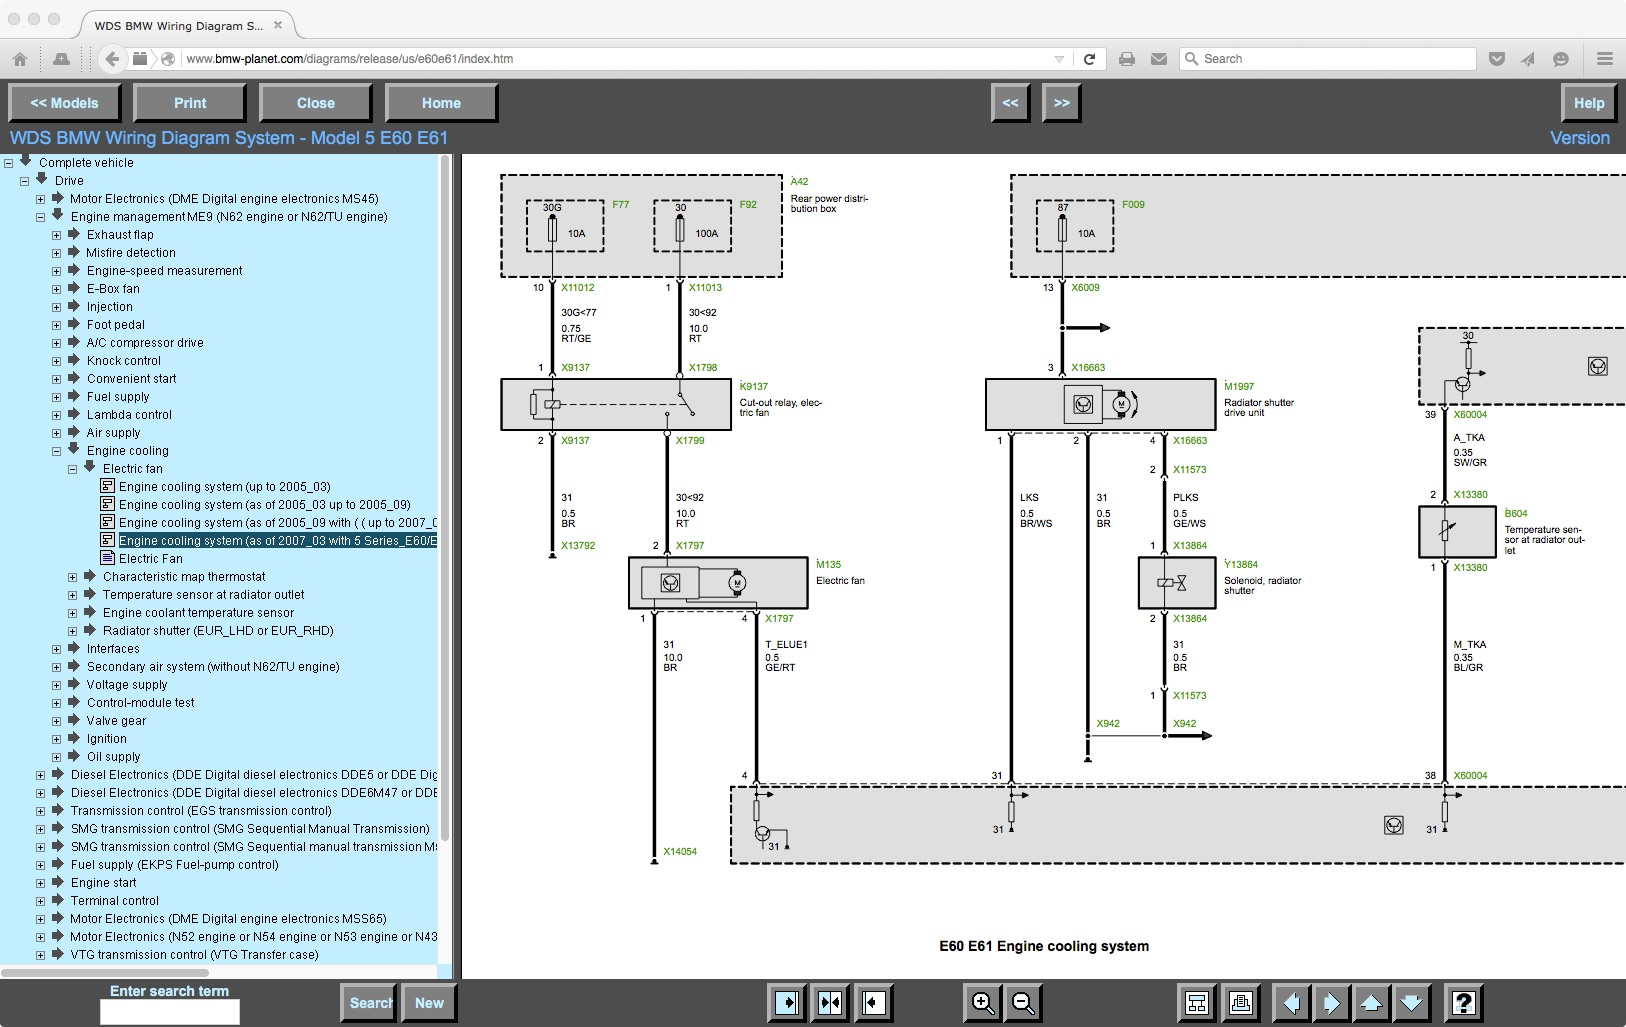 bmw e60 ccc wiring diagram gy6 150cc cic best library blower diagrams scematic e36